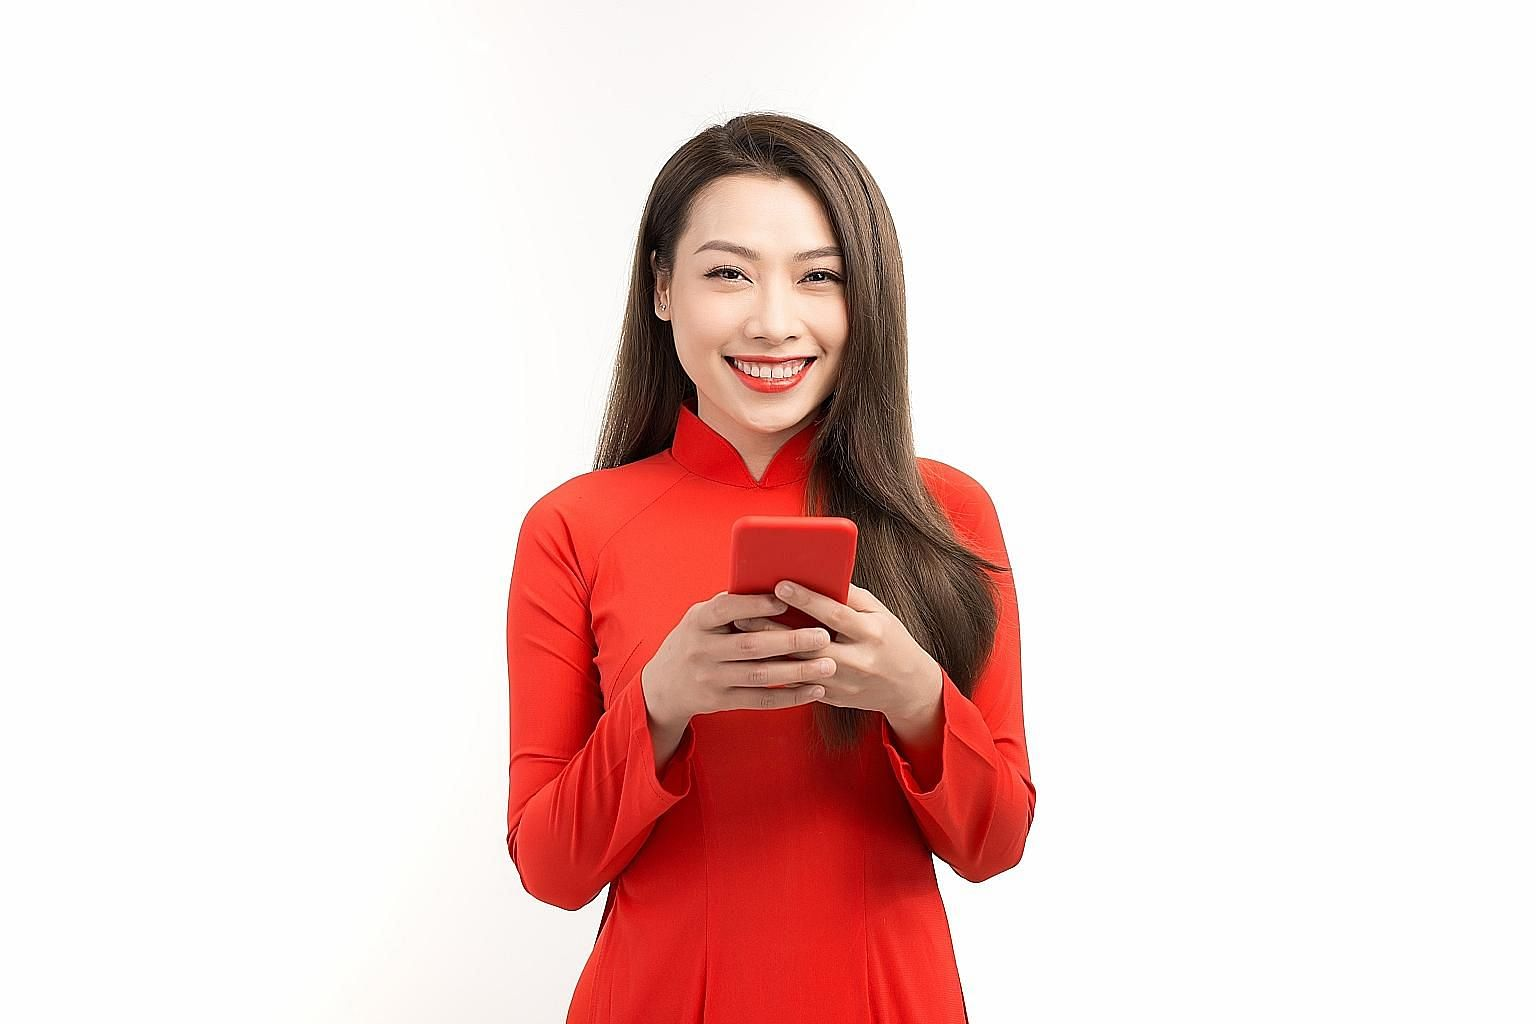 GrabPay had over two million GrabPay Angbao sent last year over the CNY period, an increase of 25 per cent compared with 2018.